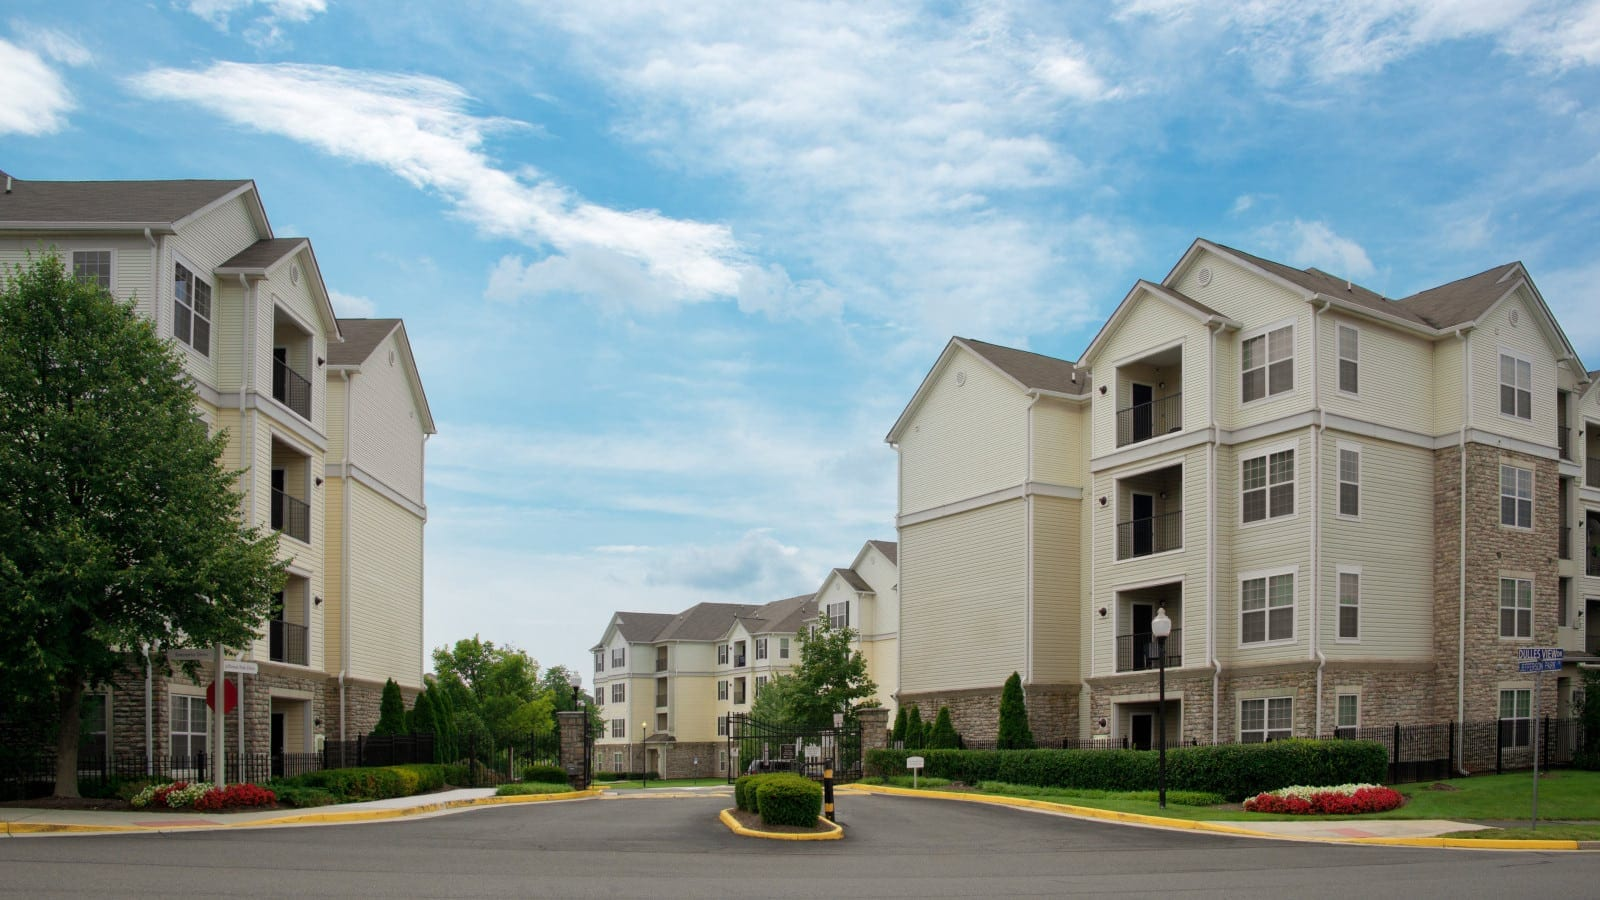 Gated Apartment Complex Stock Photo